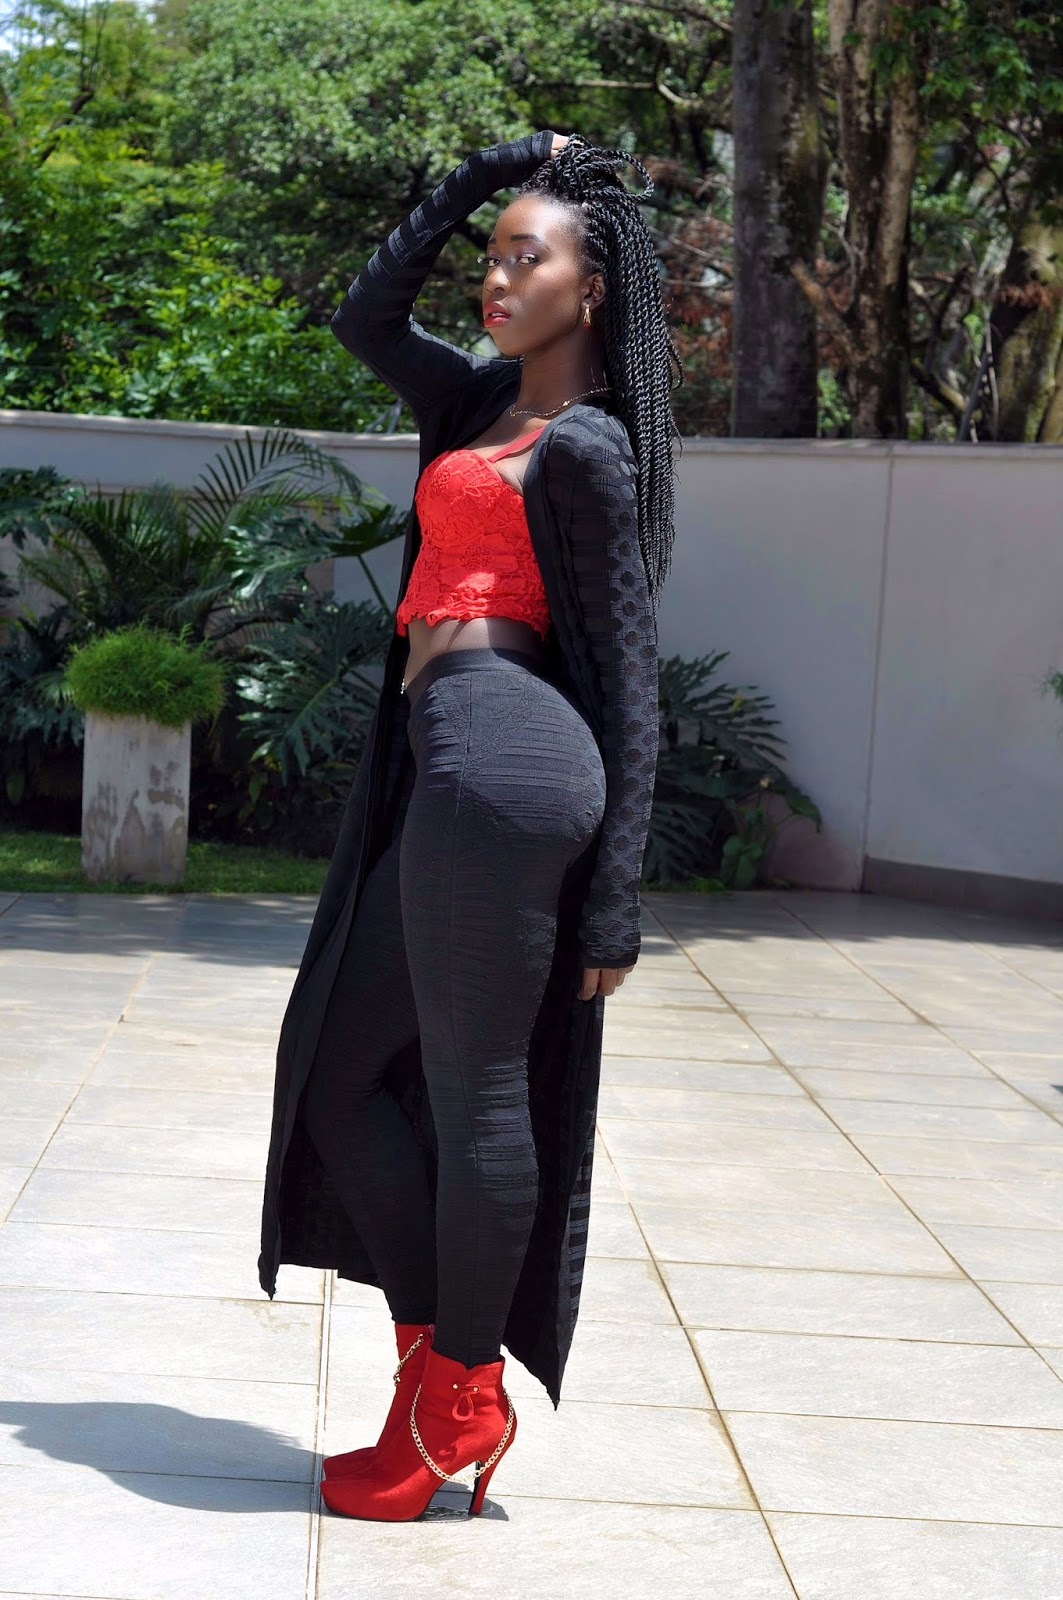 how to style bustier tops, bustier tops, style with Ezil, Ezil, Kenyan fashion blogger, Blogger